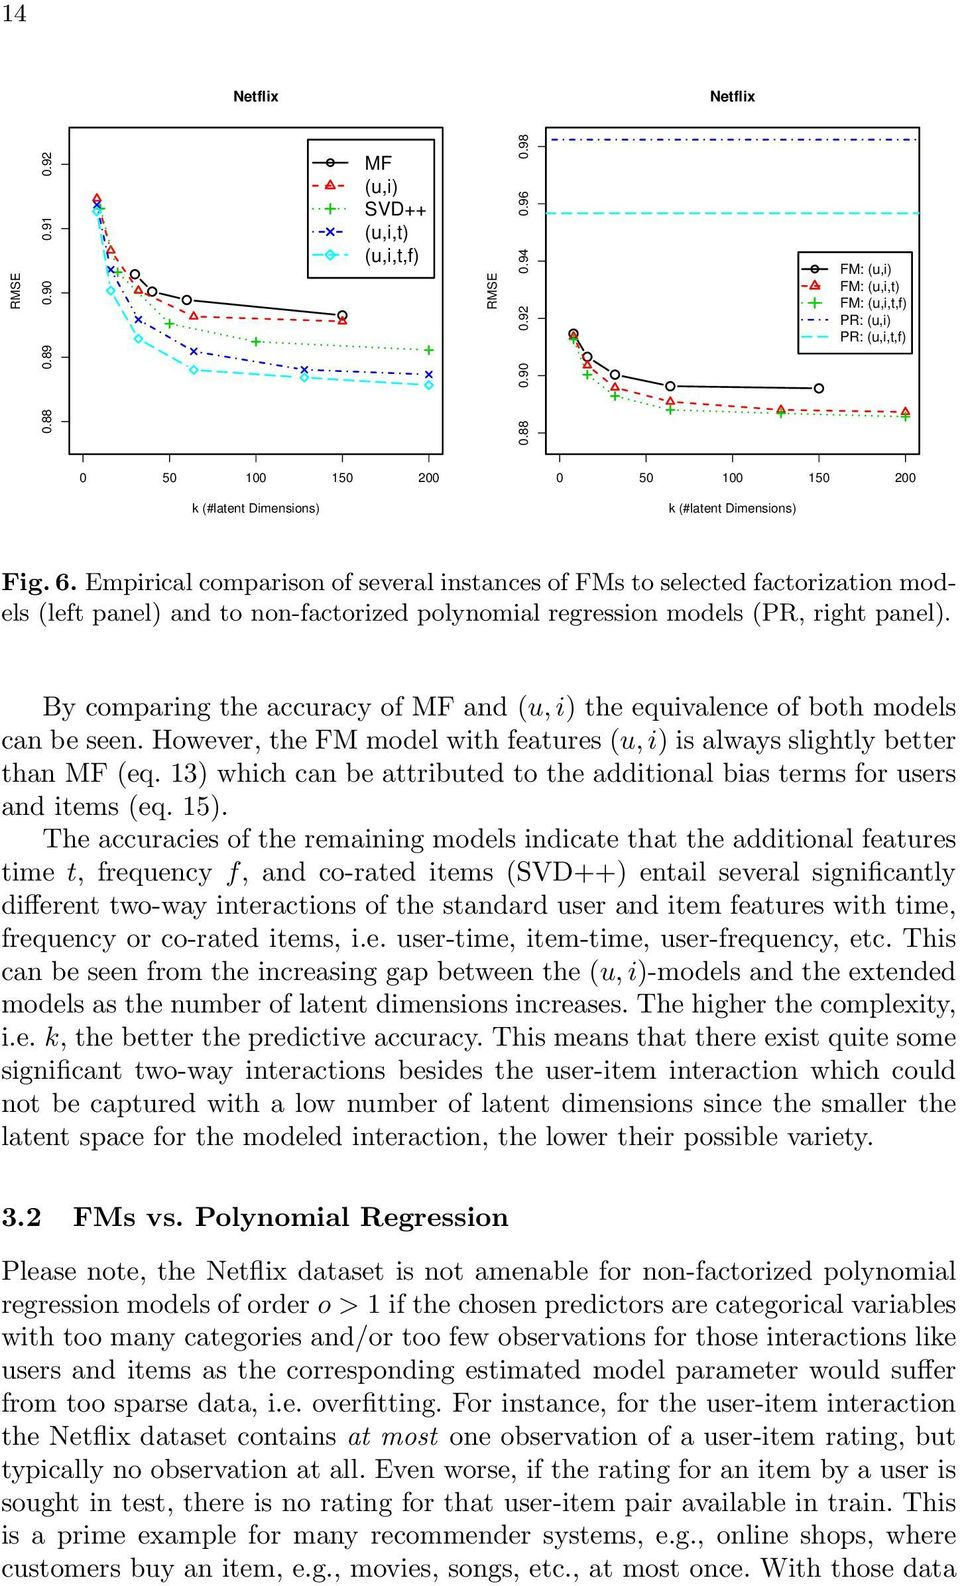 Empirical comparison of several instances of FMs to selected factorization models (left panel) and to non-factorized polynomial regression models (PR, right panel).